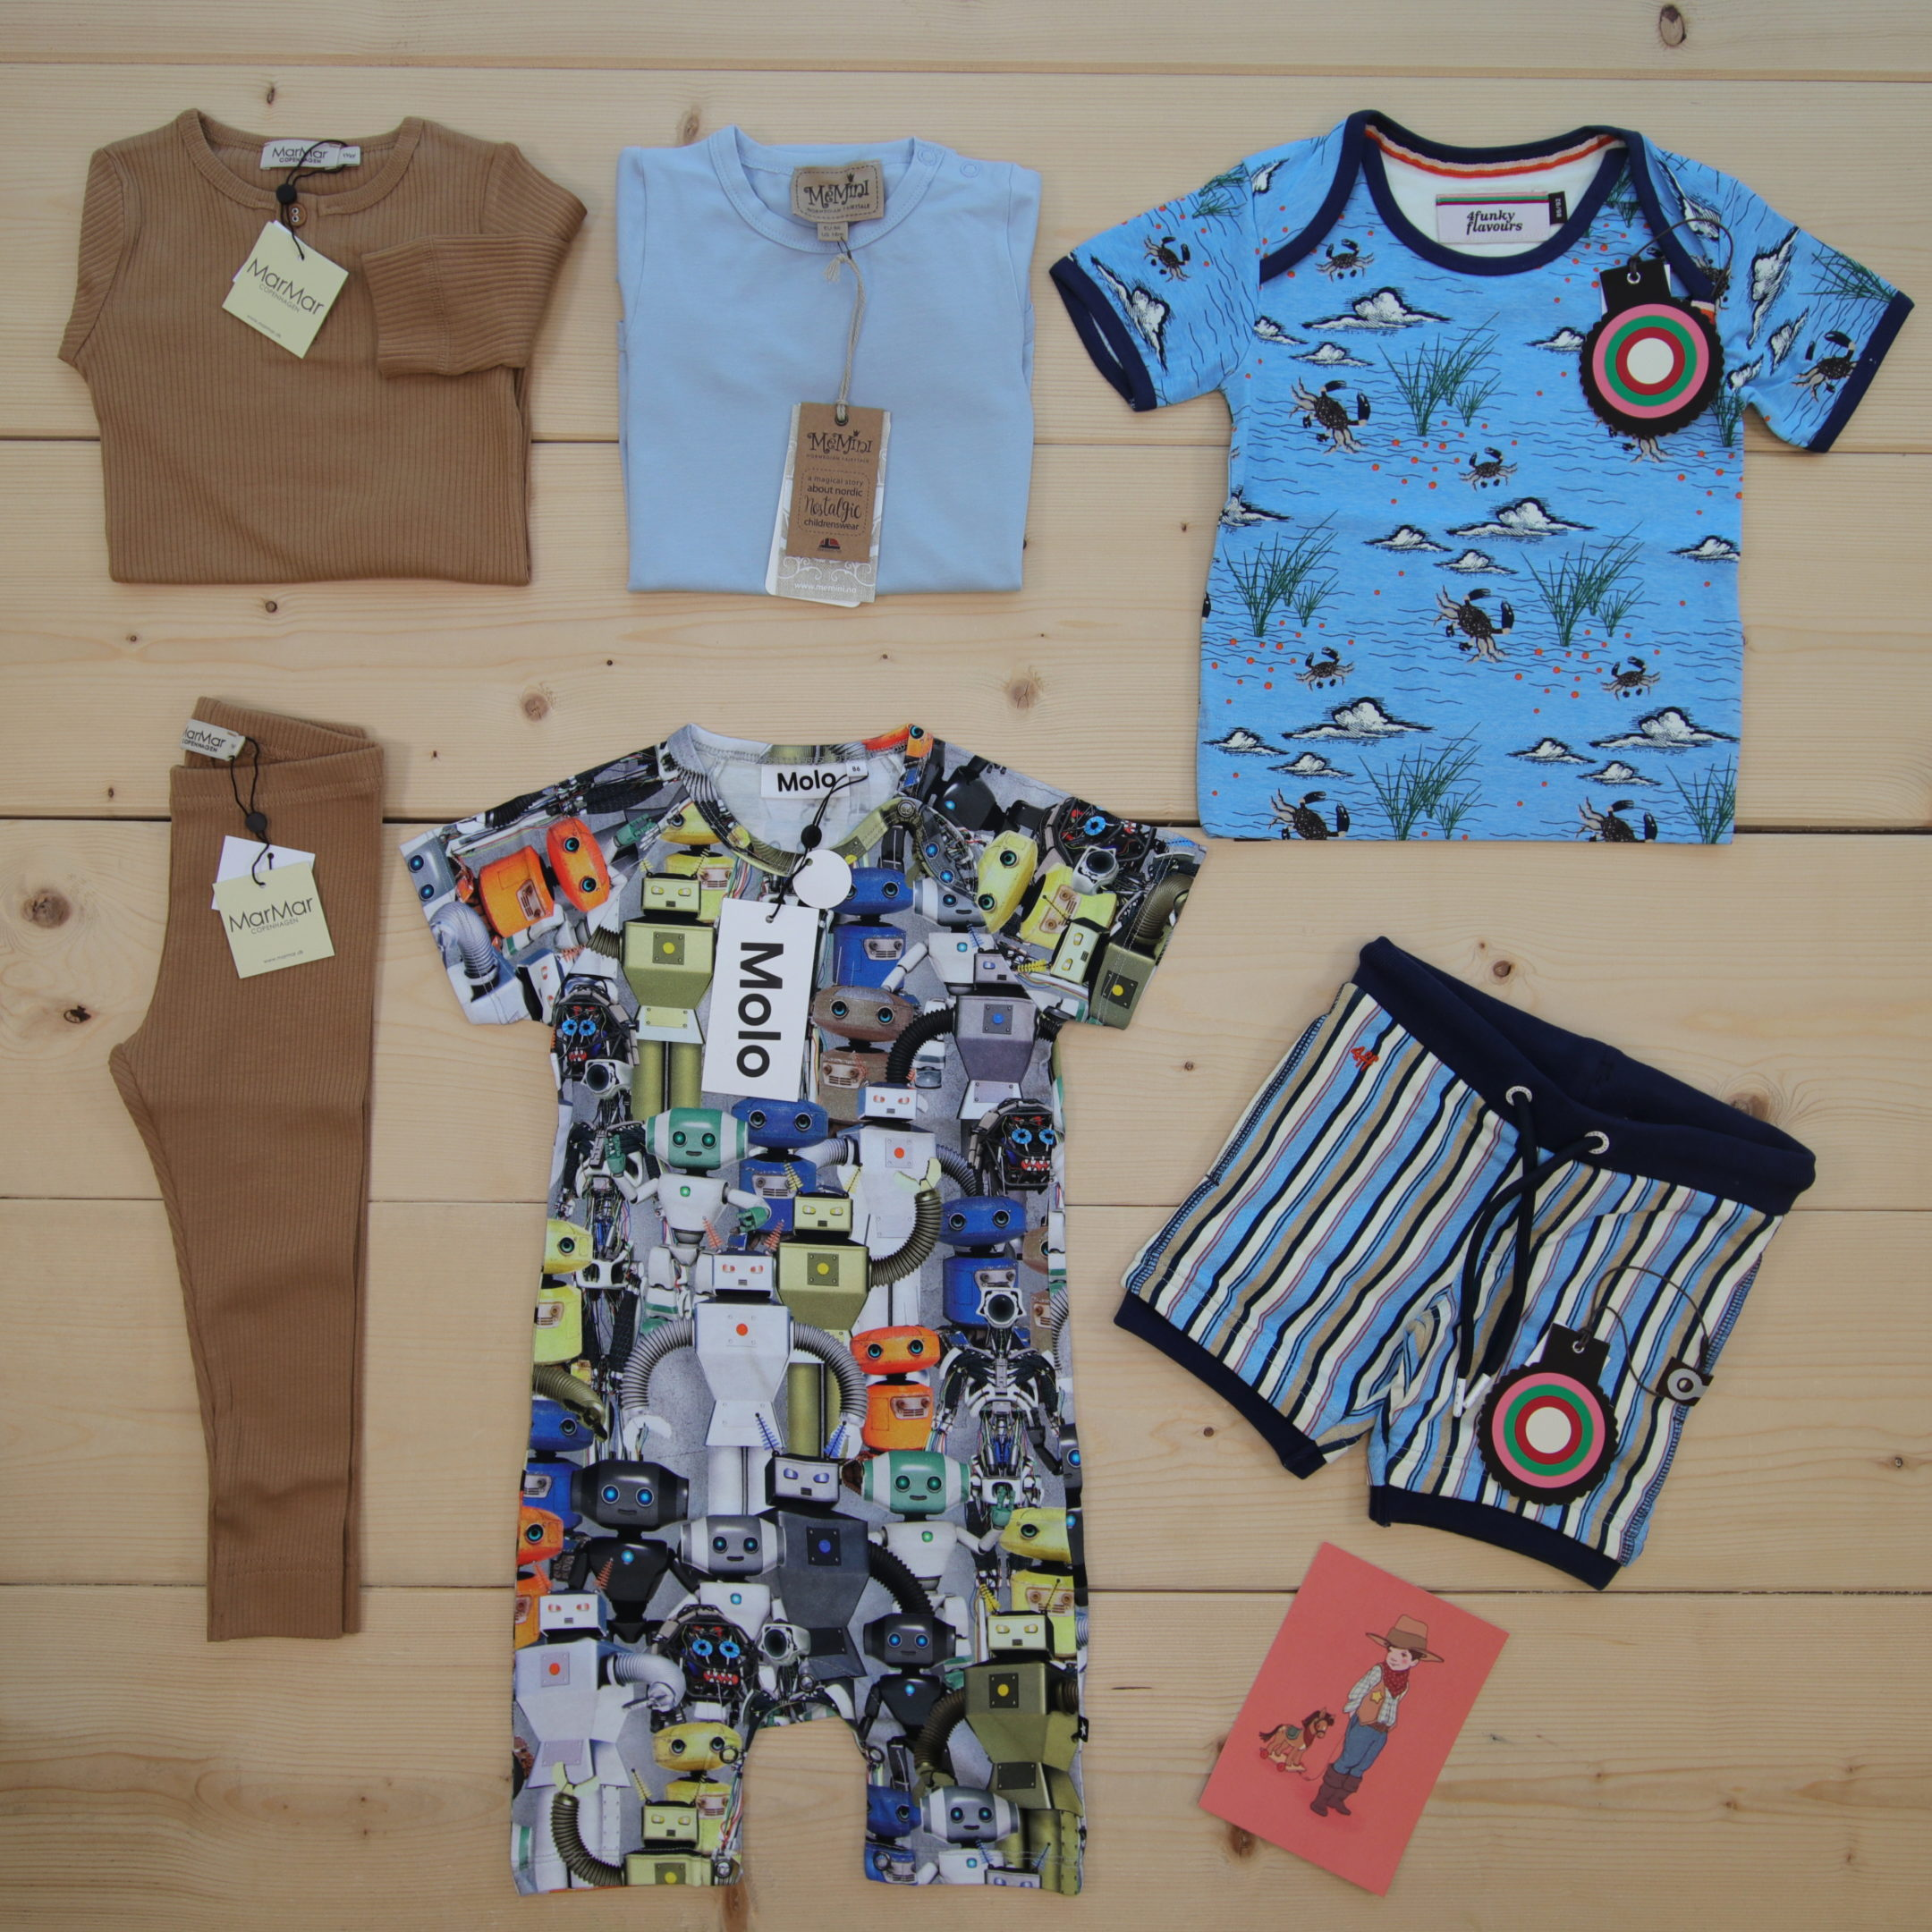 This is a 125 GBP* Småkassen that we prepared for a boy  in the styles cool, colorful, and cute in size 86